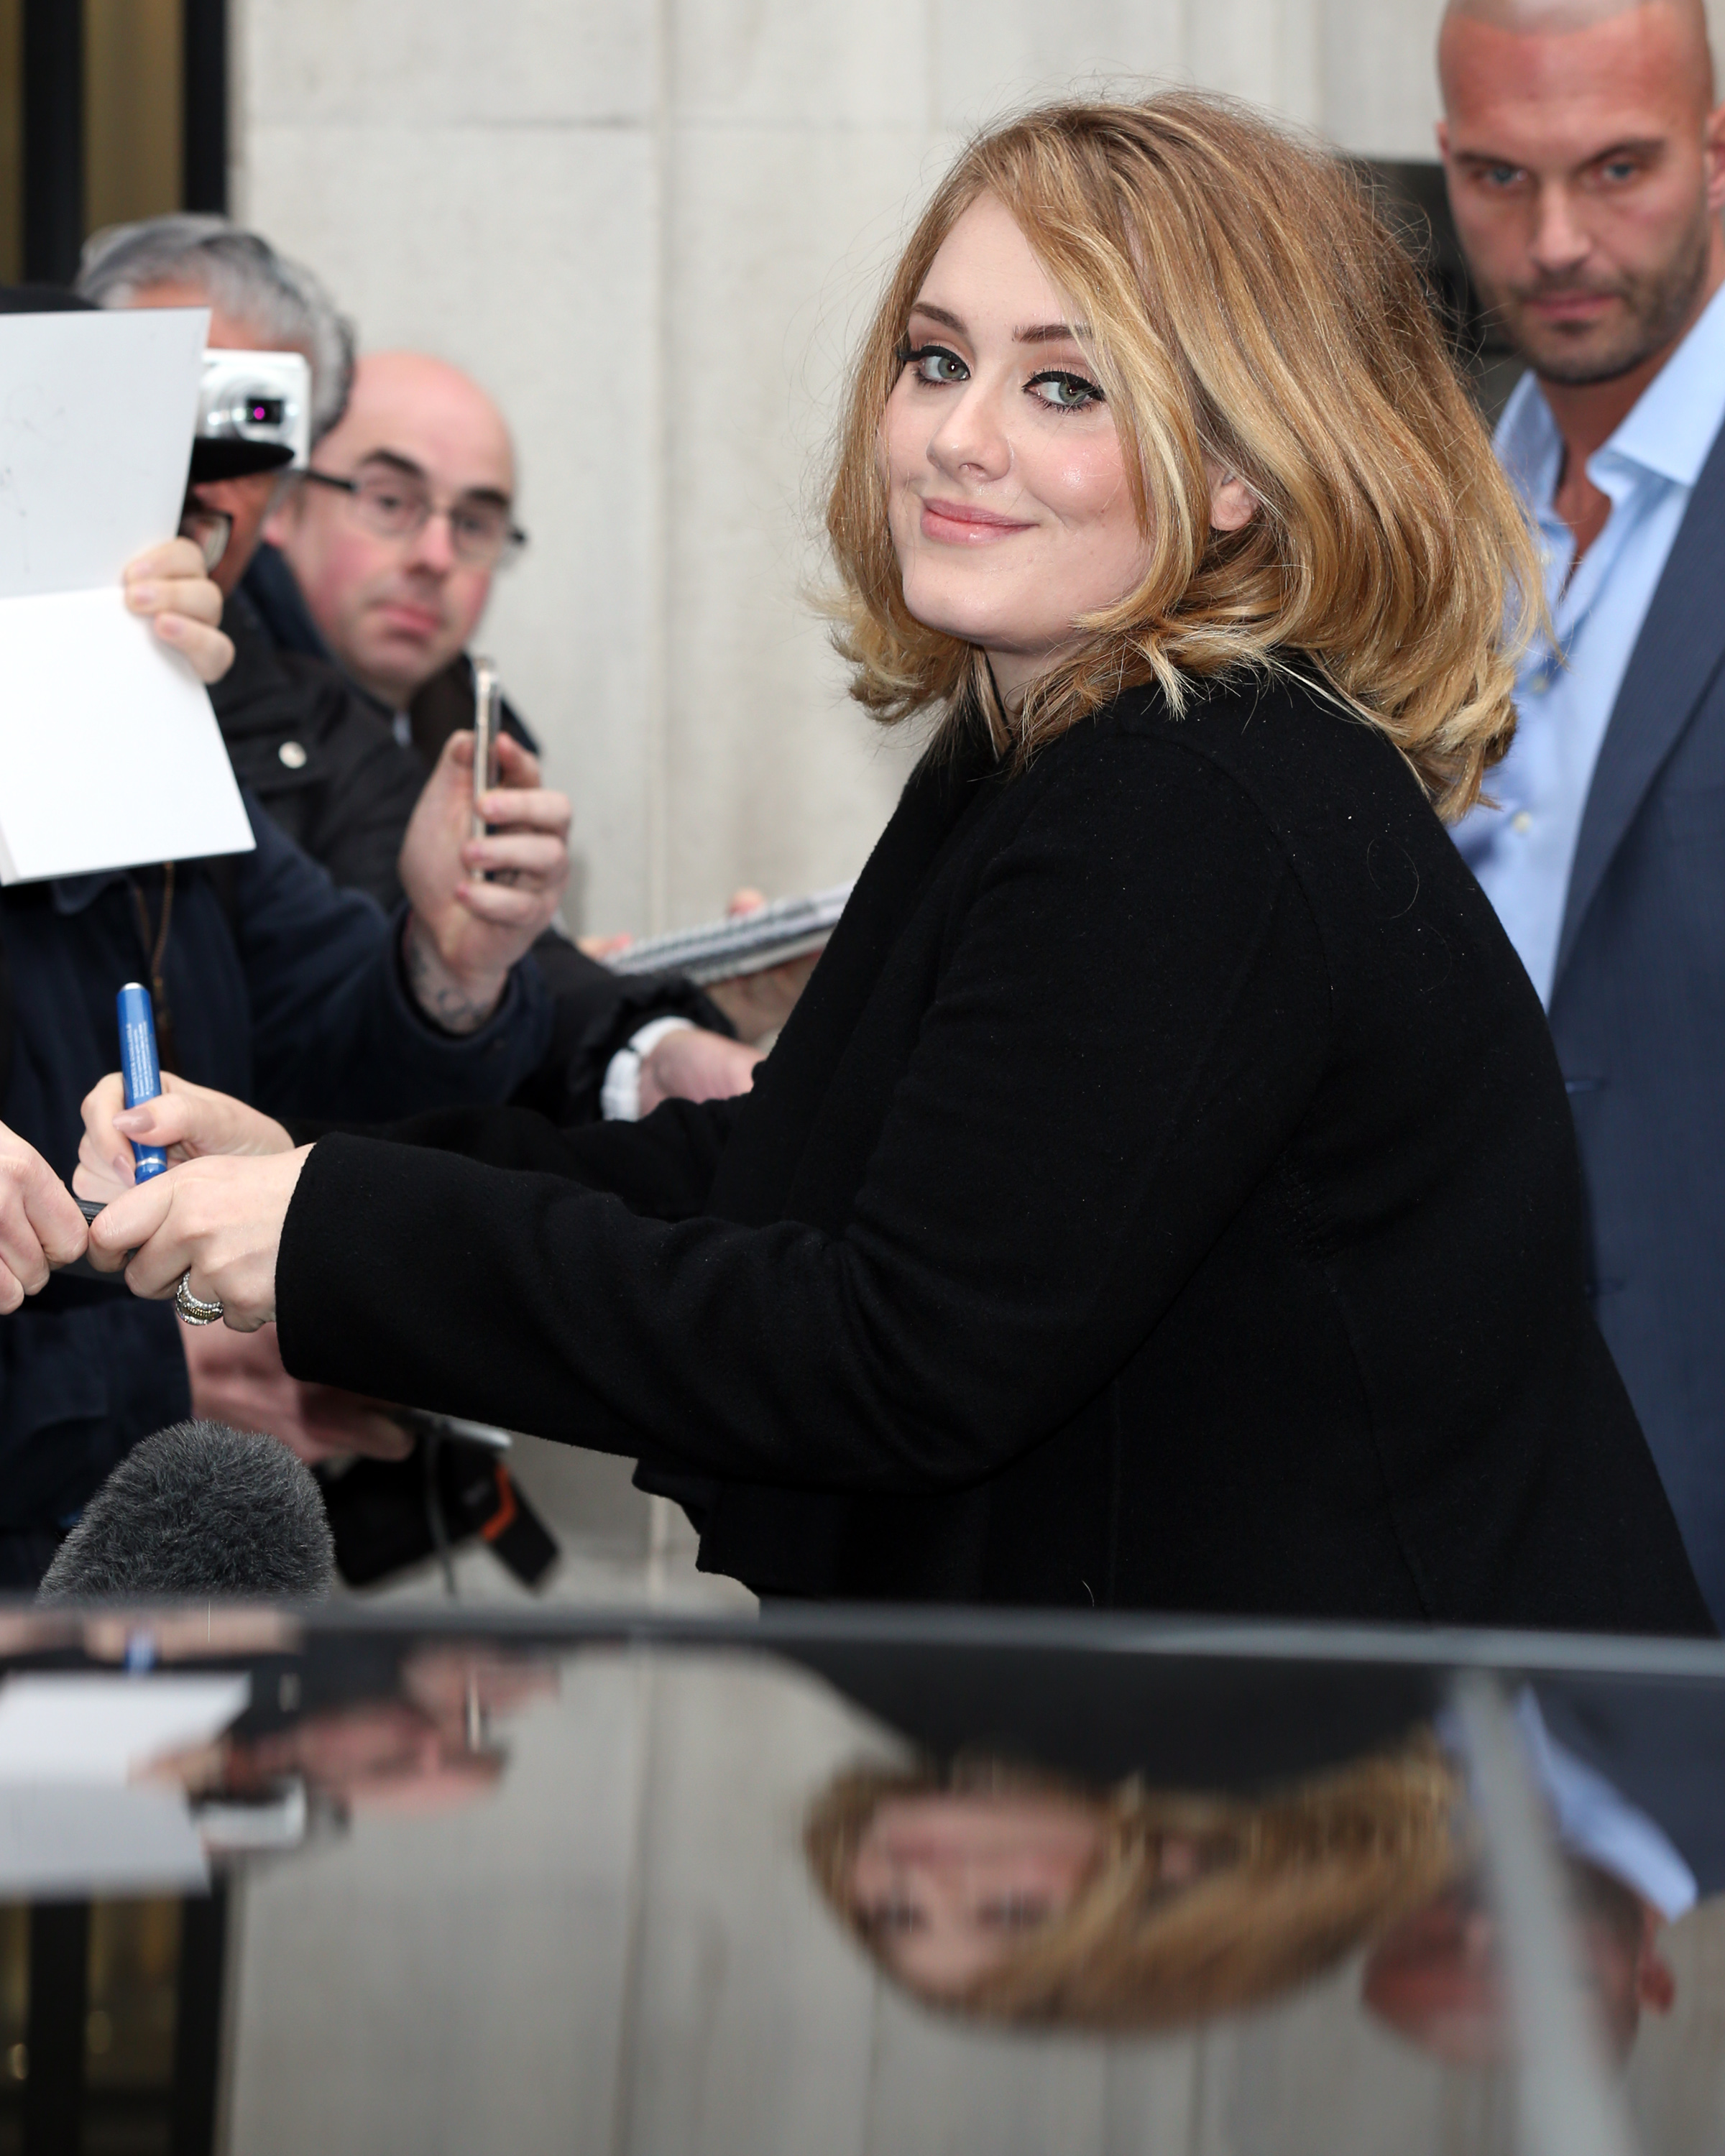 Adele seen at BBC Radio 2 on Oct. 23, 2015 in London, England.